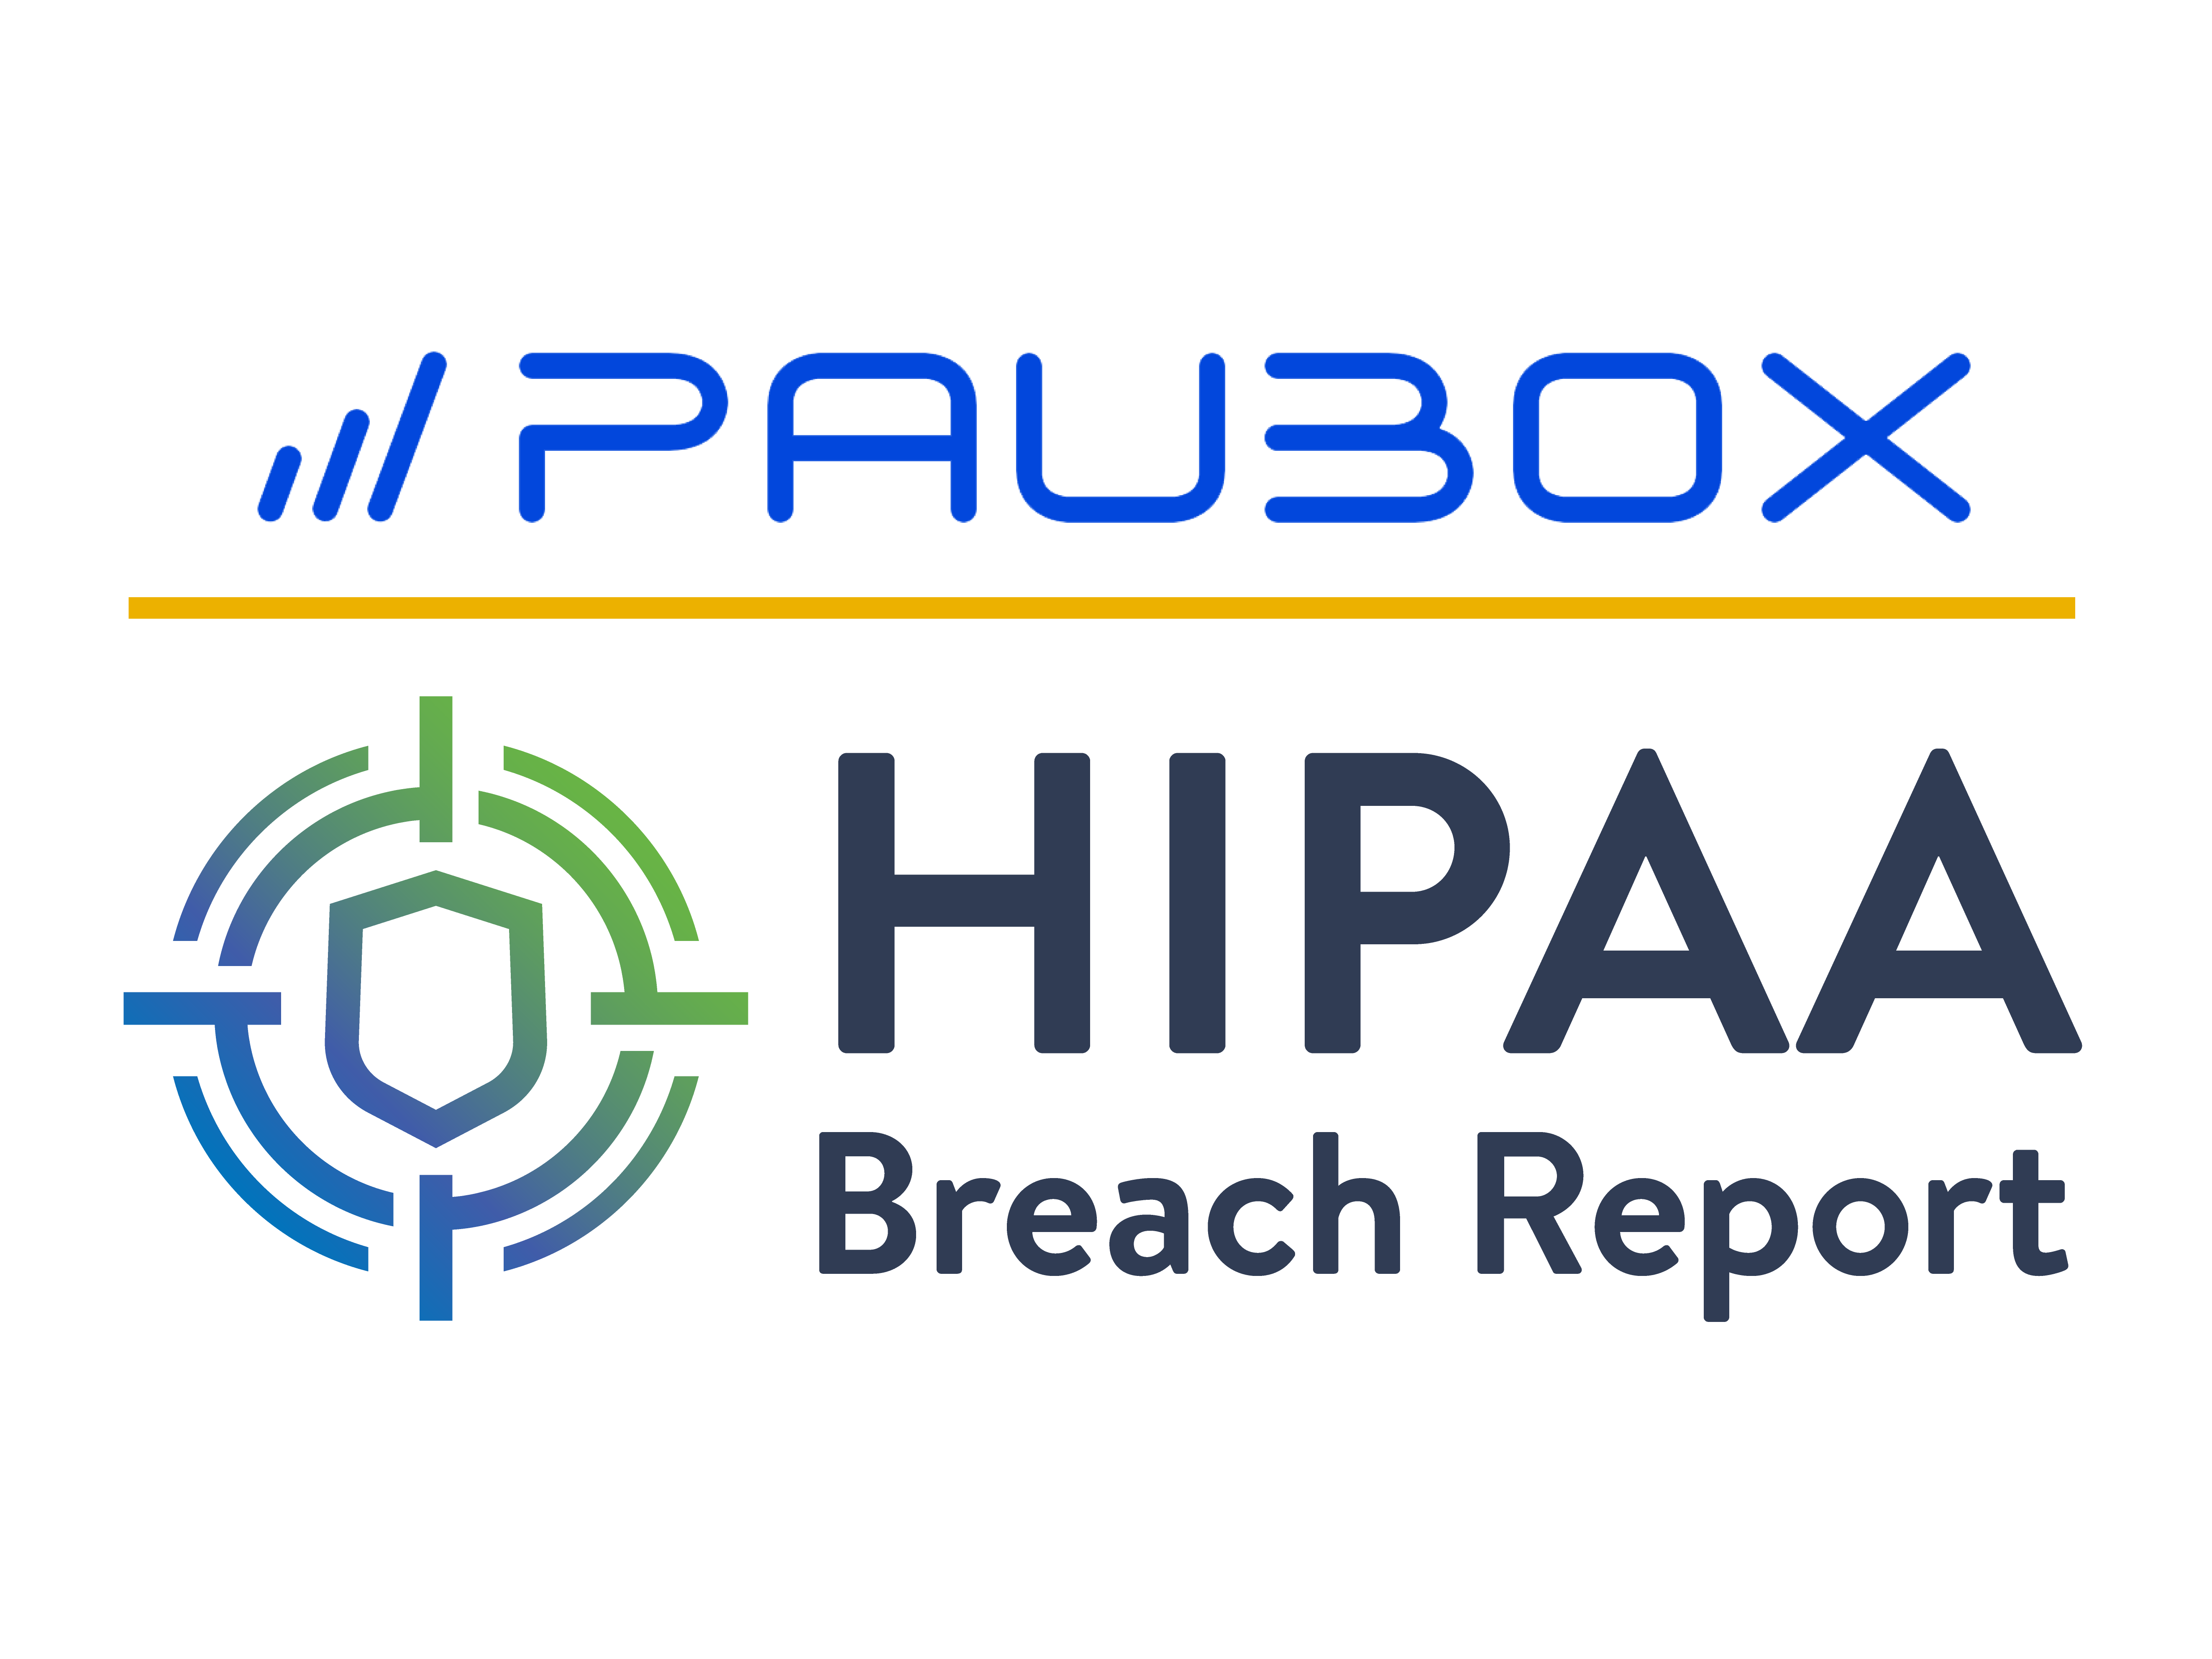 HIPAA Breach Report